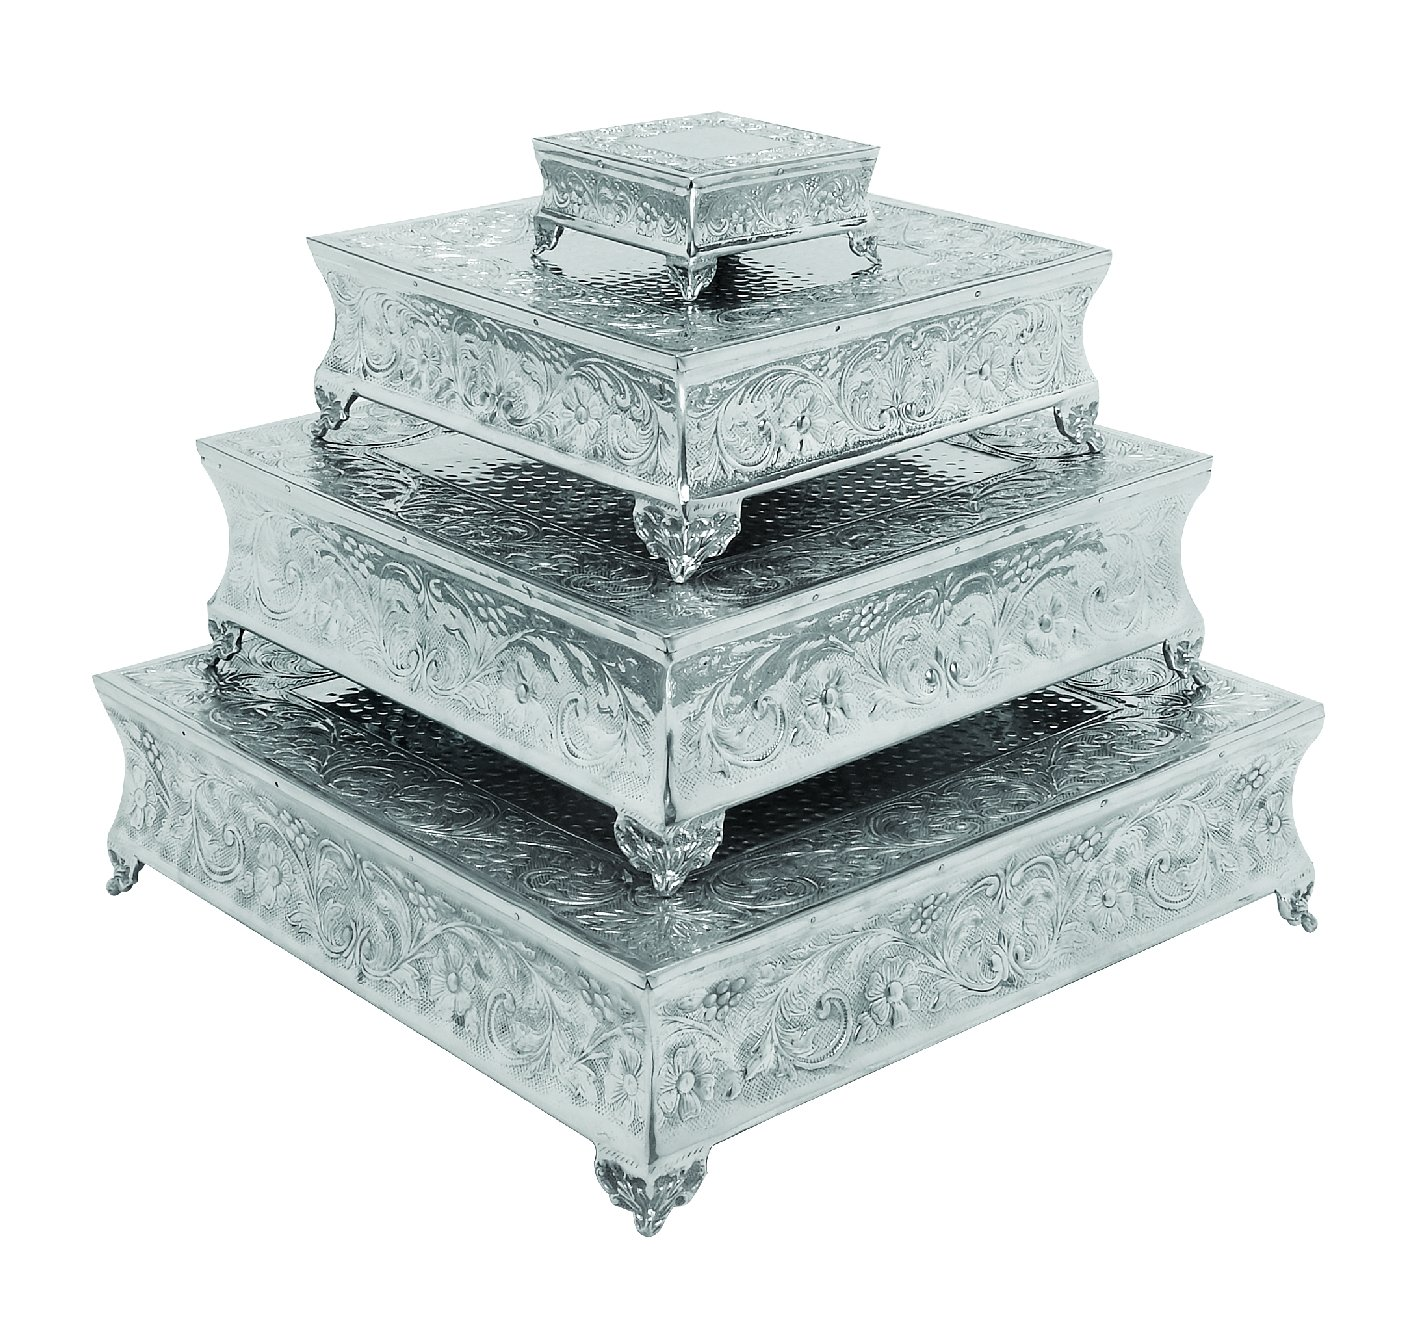 Amazon.com: Deco 79 Aluminium Square Cake Stand Home Decor, 22 By 18 By 14  By 6 Inch, Set Of 4: Home U0026 Kitchen